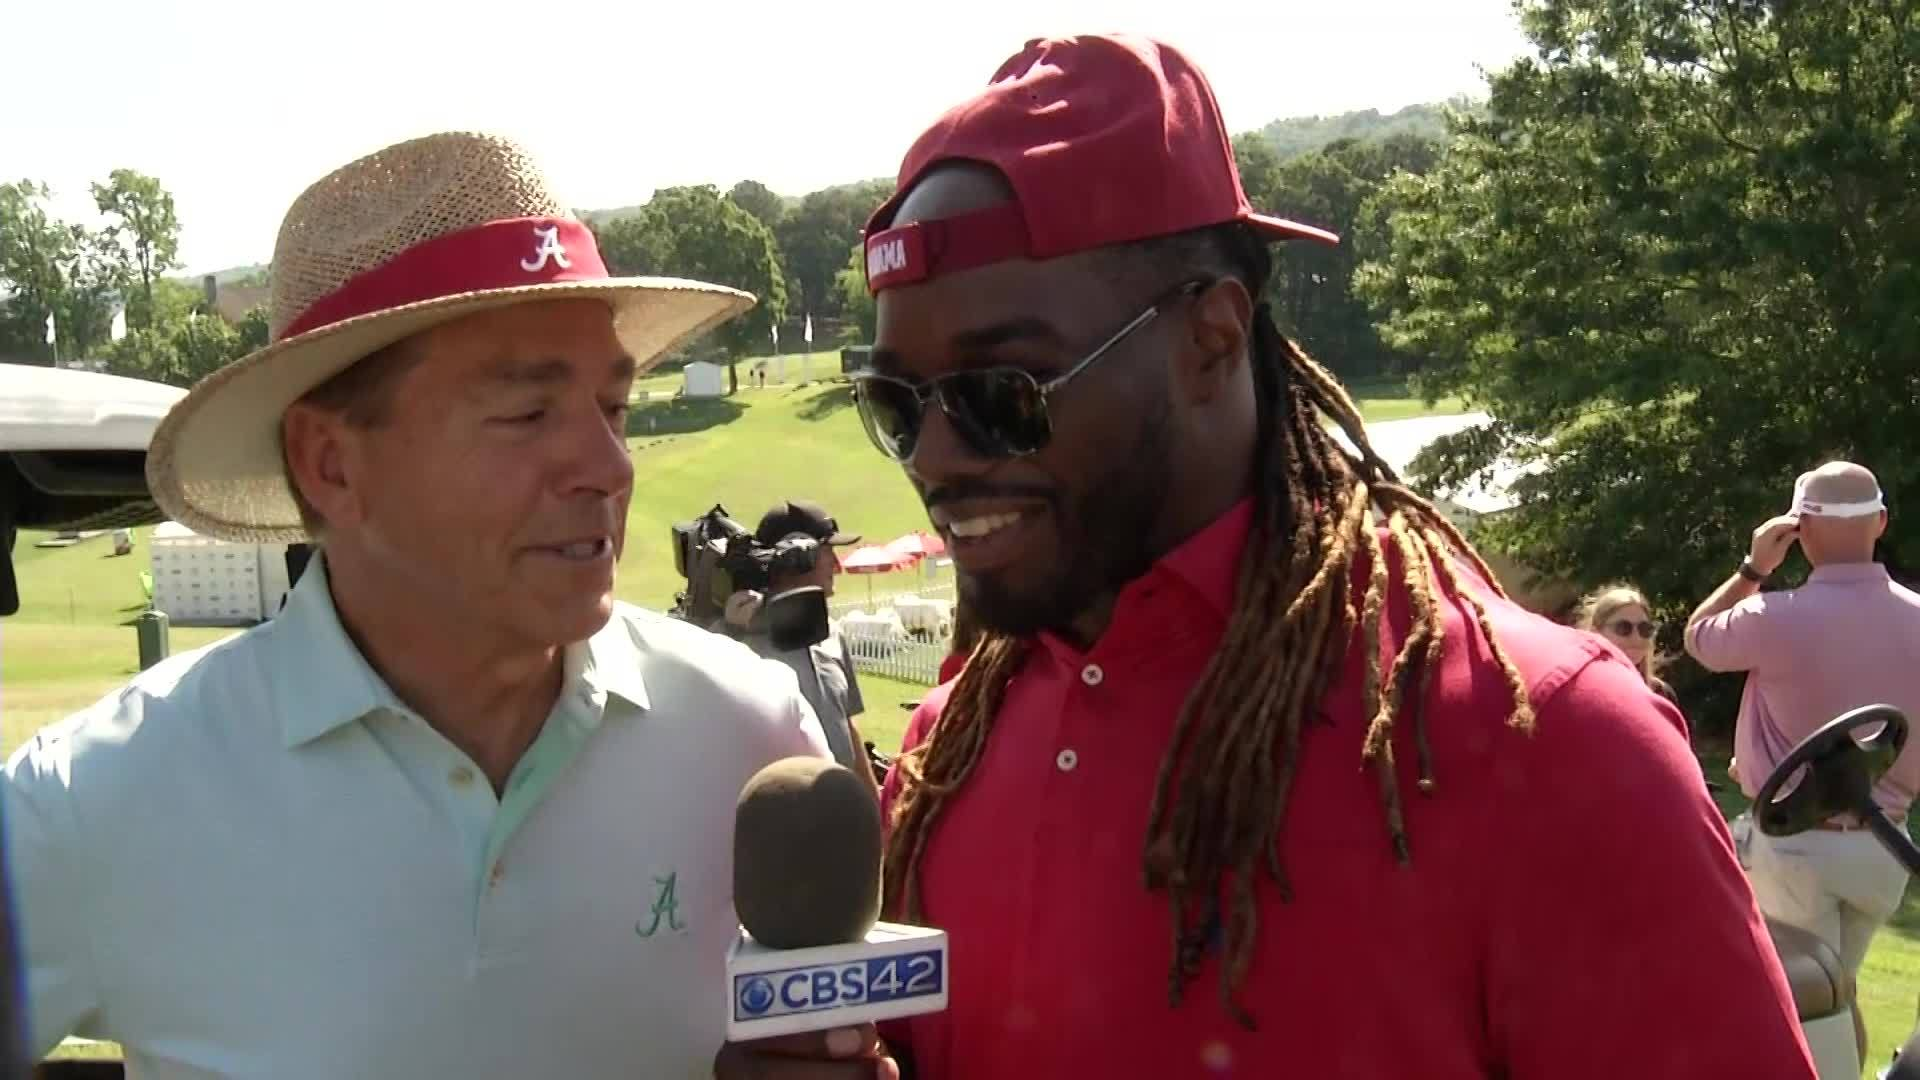 Trent Richardson: CBS 42 Golf Correspondent at the Regions